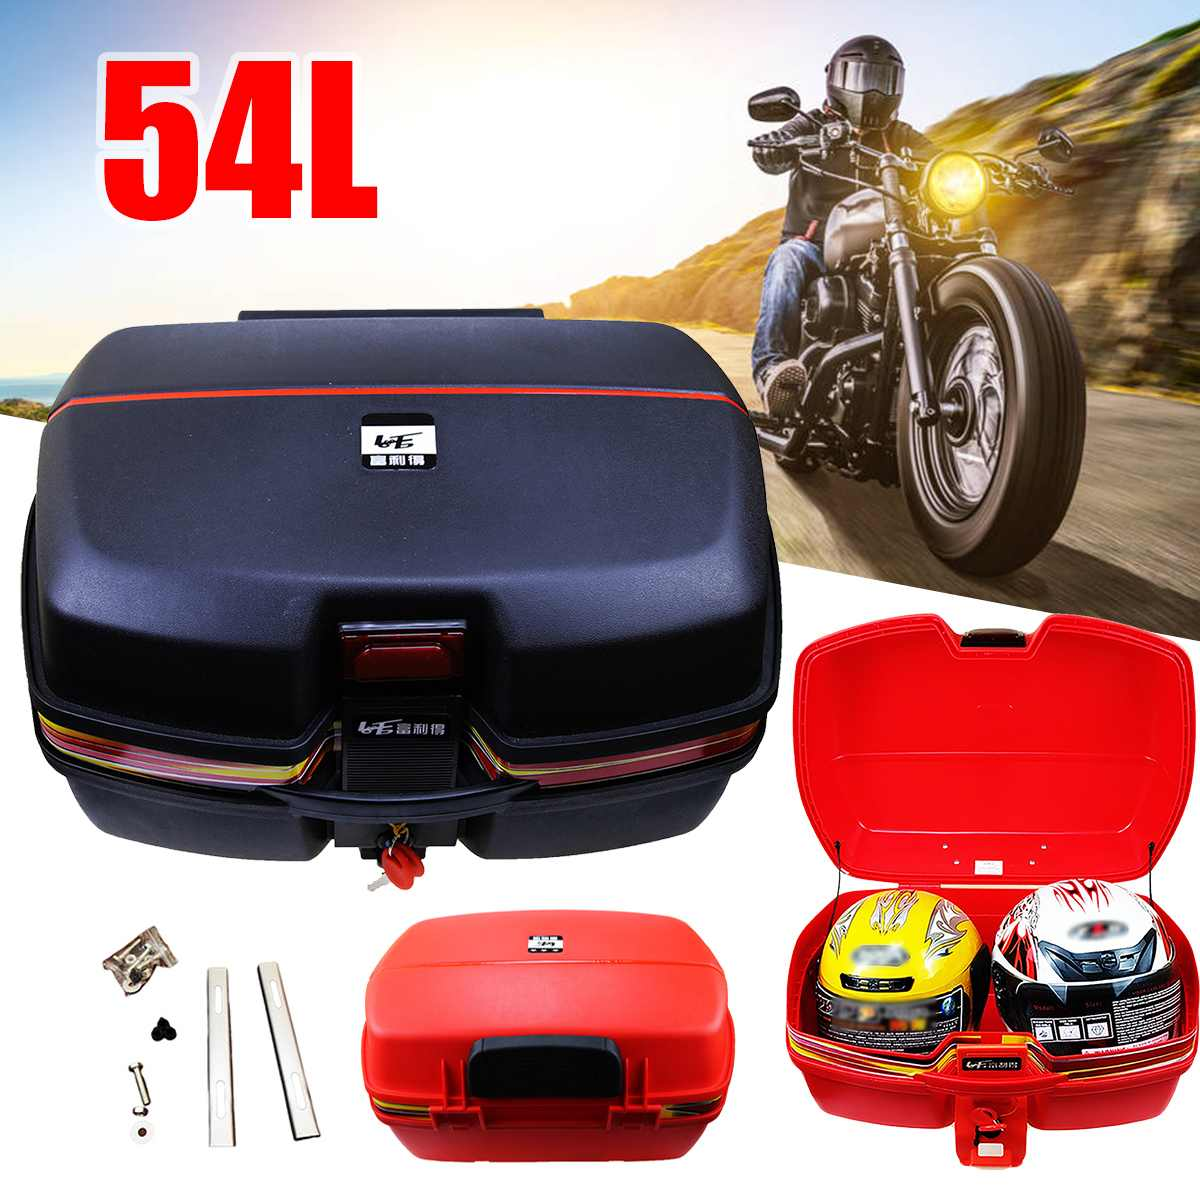 54L Motorcycle Trunk Waterproof Motor Top Case For Double Helmet Motorbike Rear Storage Luggage Tool Box With Secure Latch Black